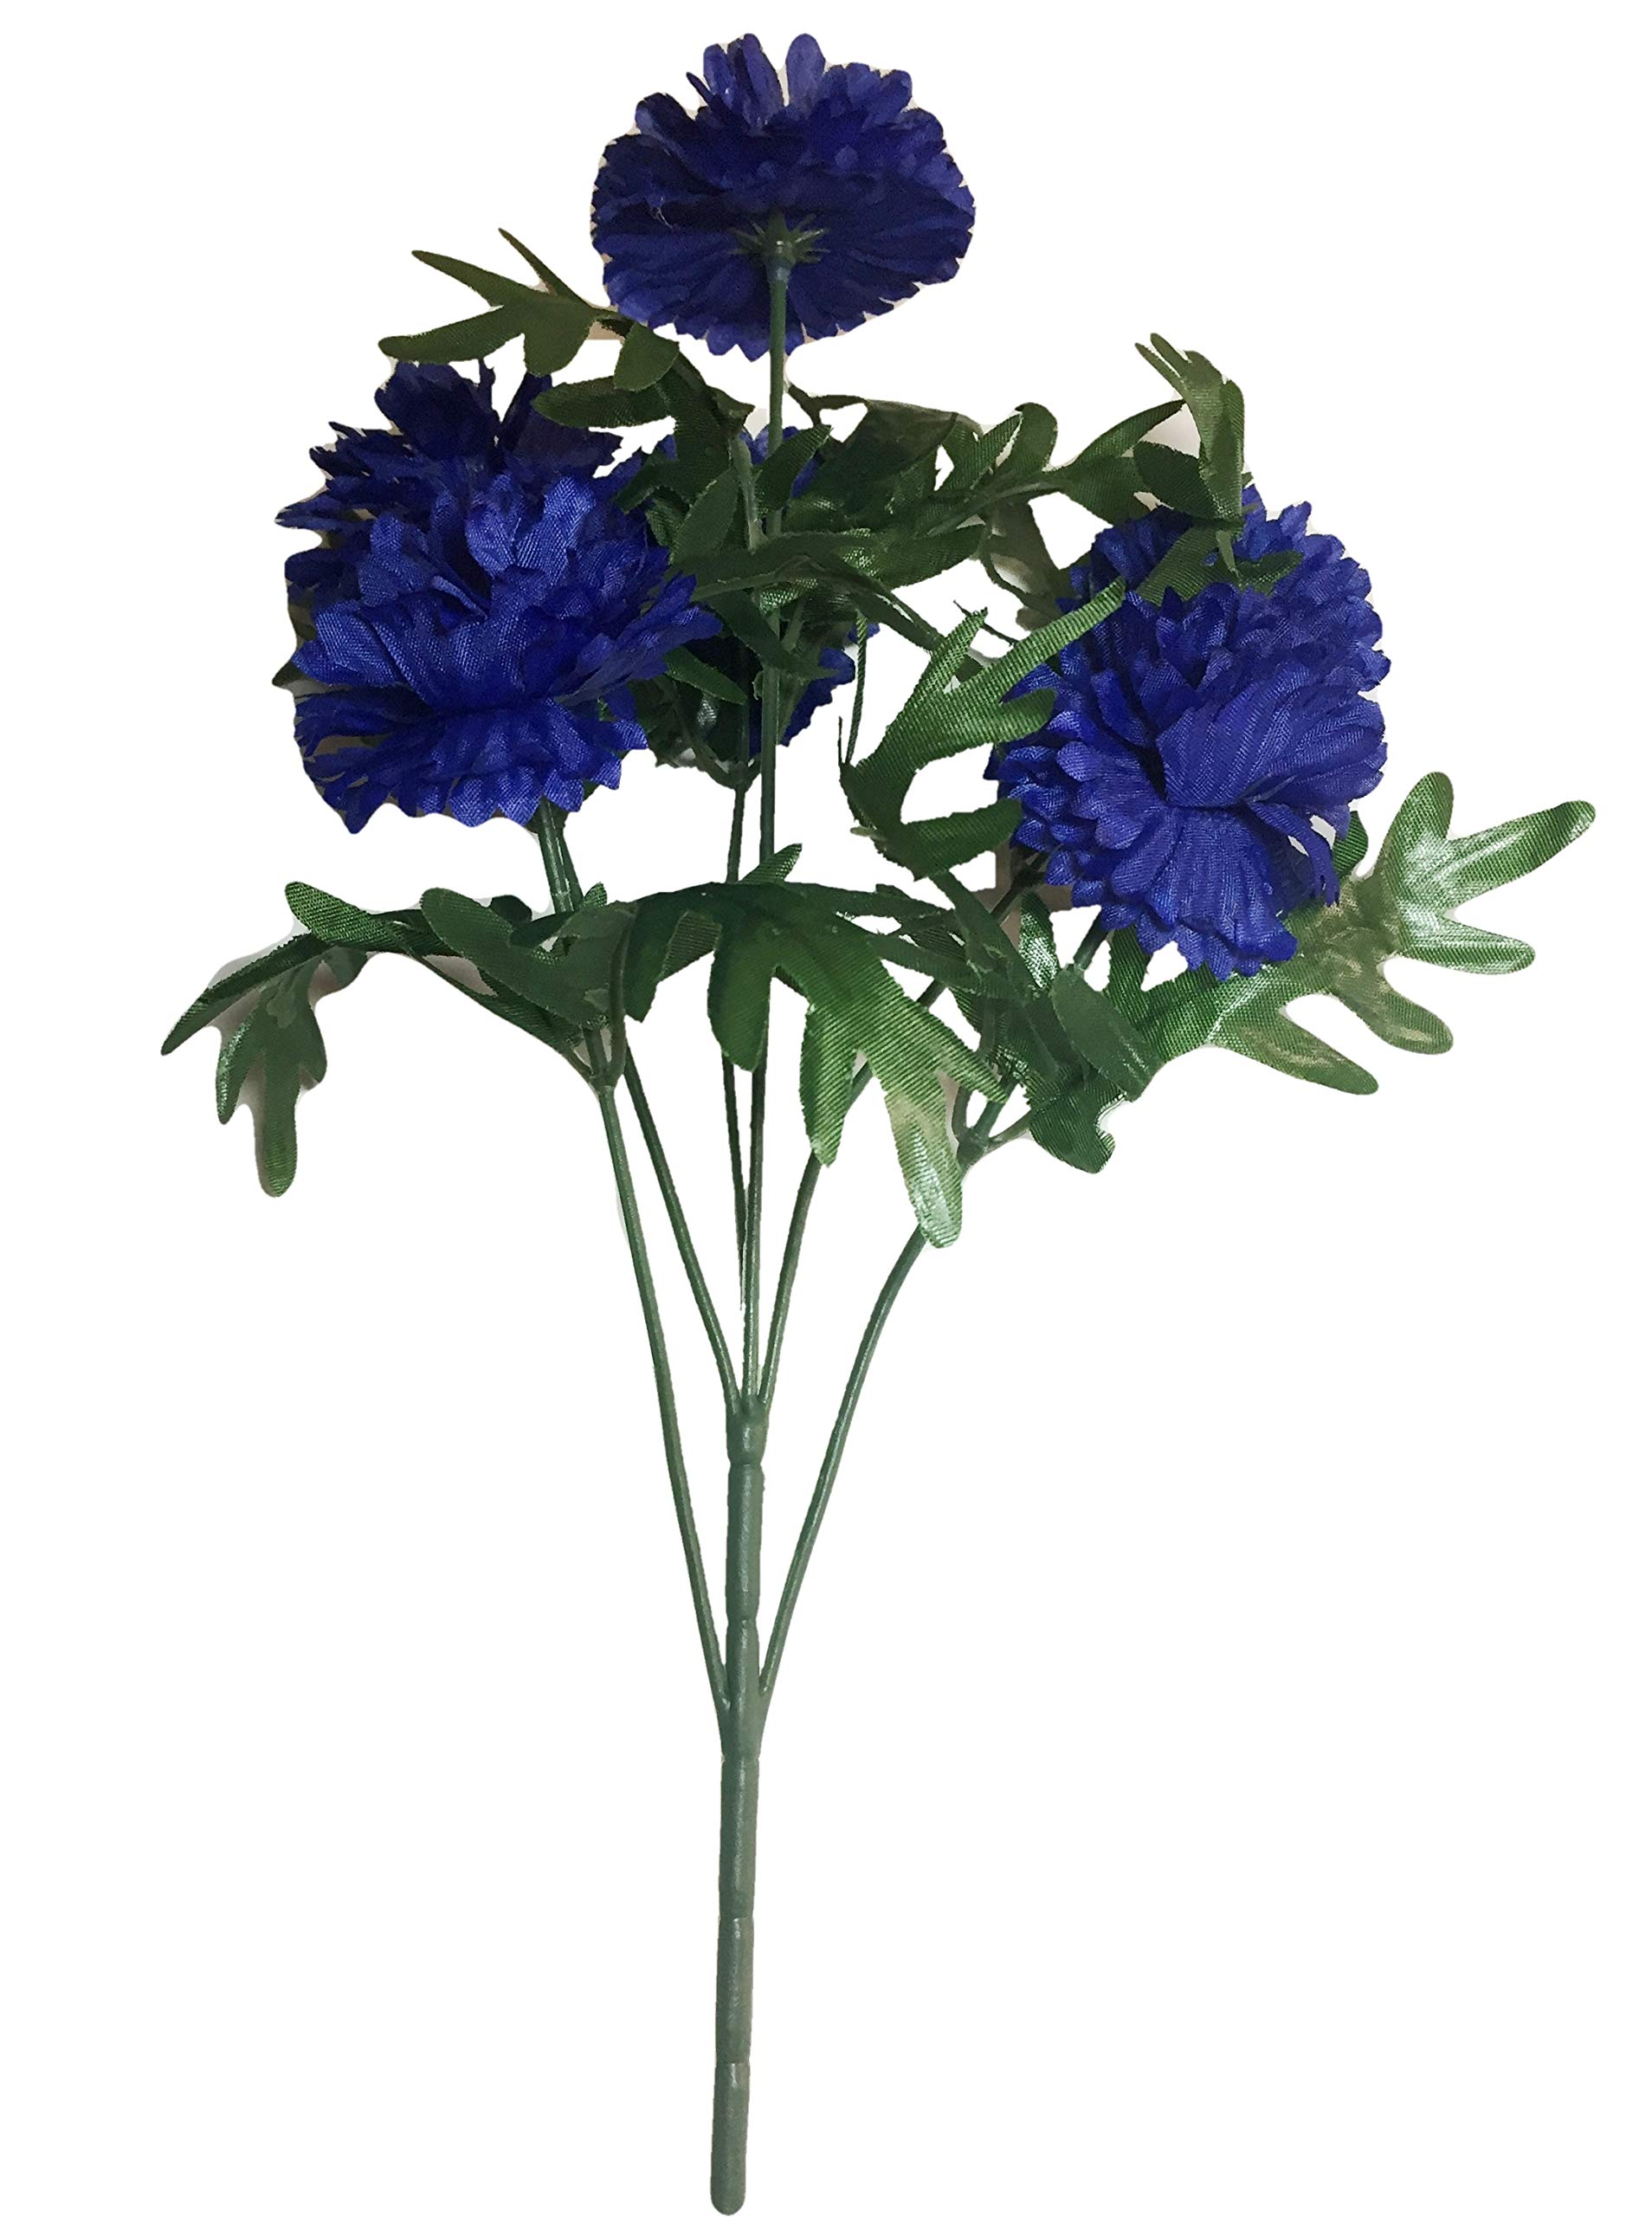 Jewel-Tone-Blue-Bachelors-Button-Blooms-Bush-20-inches-Tall-Bouquets-Home-Decor-Weddings-Offices-Outdoors-Lifelike-Realistic-Vases-Floral-Arrangements-Multi-Blossoms-Cornflowers